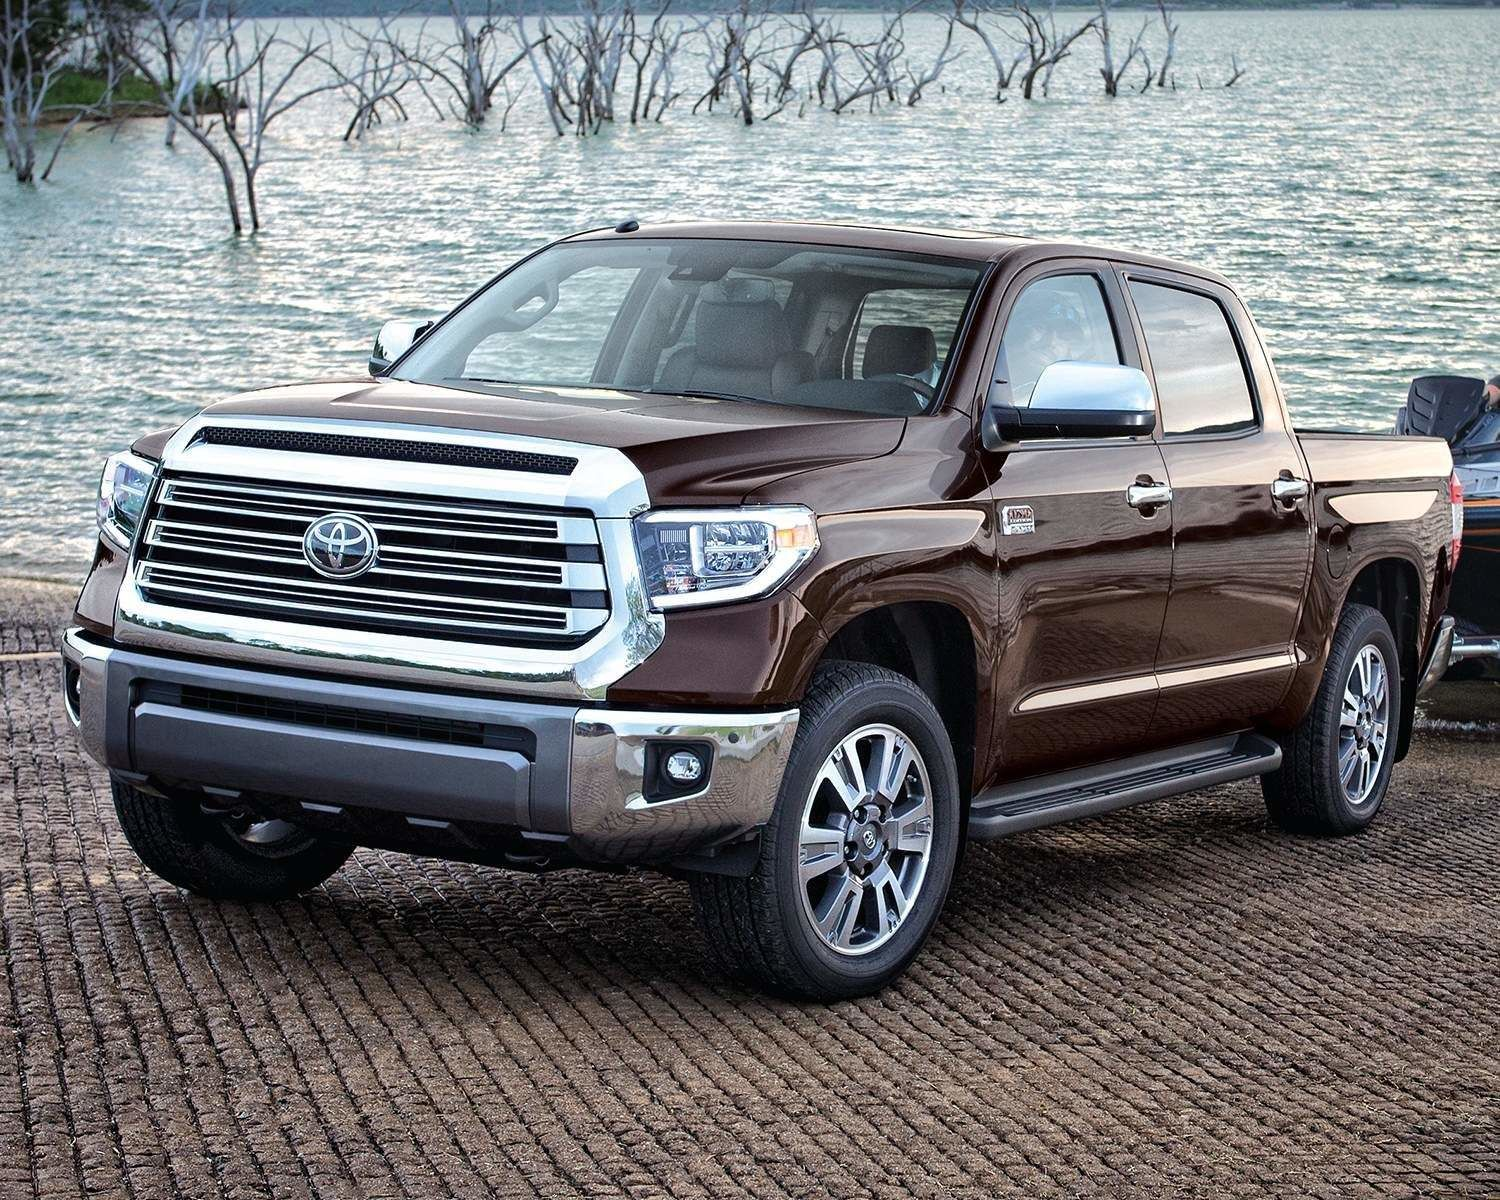 Tundra CrewMax 1794 Edition shown in Smoked Mesquite